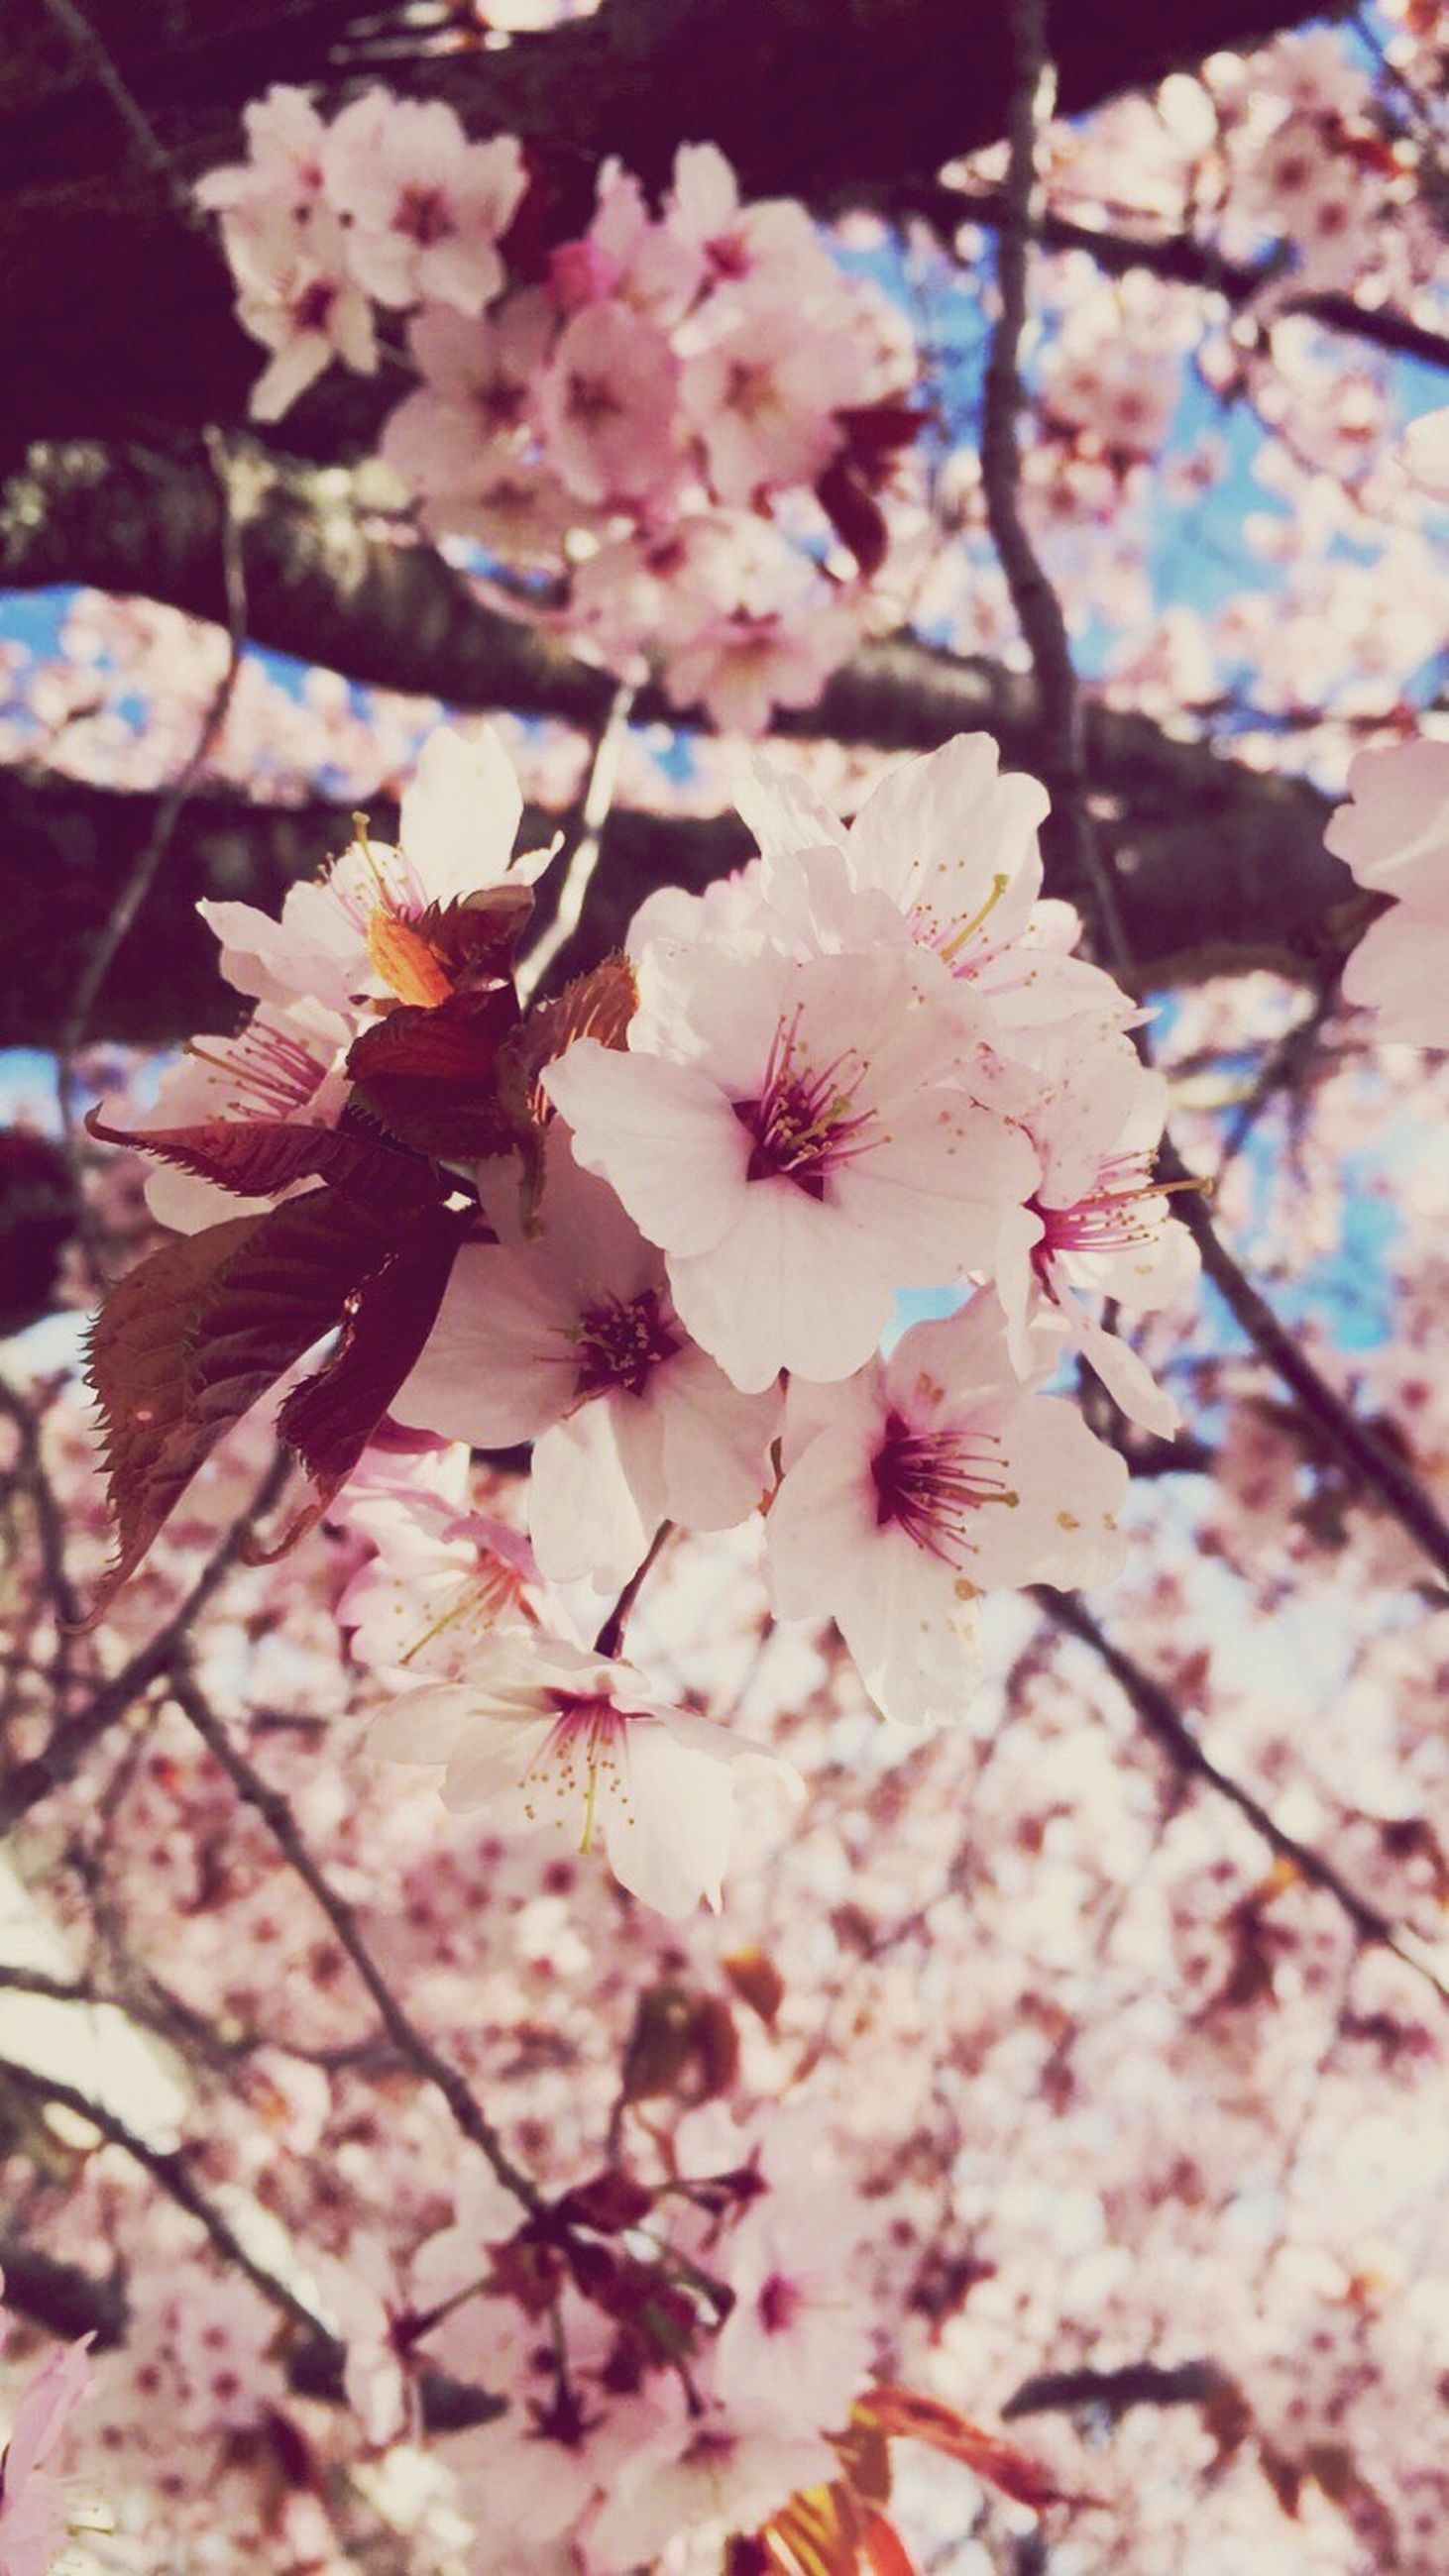 flower, freshness, branch, fragility, cherry blossom, tree, growth, beauty in nature, low angle view, cherry tree, blossom, petal, pink color, nature, springtime, in bloom, blooming, fruit tree, twig, close-up